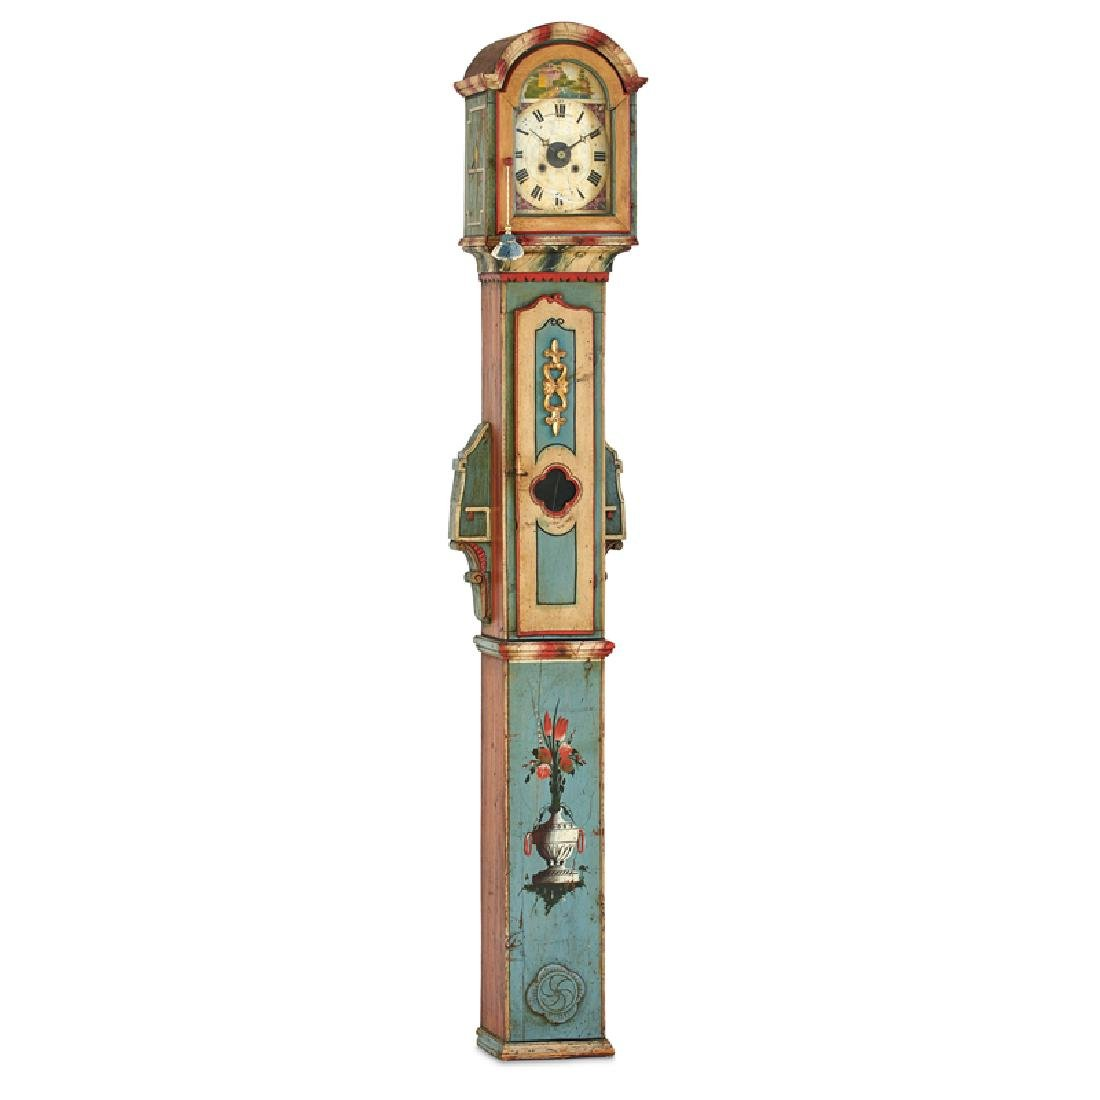 CARVED AND PAINTED WOOD TALL CASE CLOCK